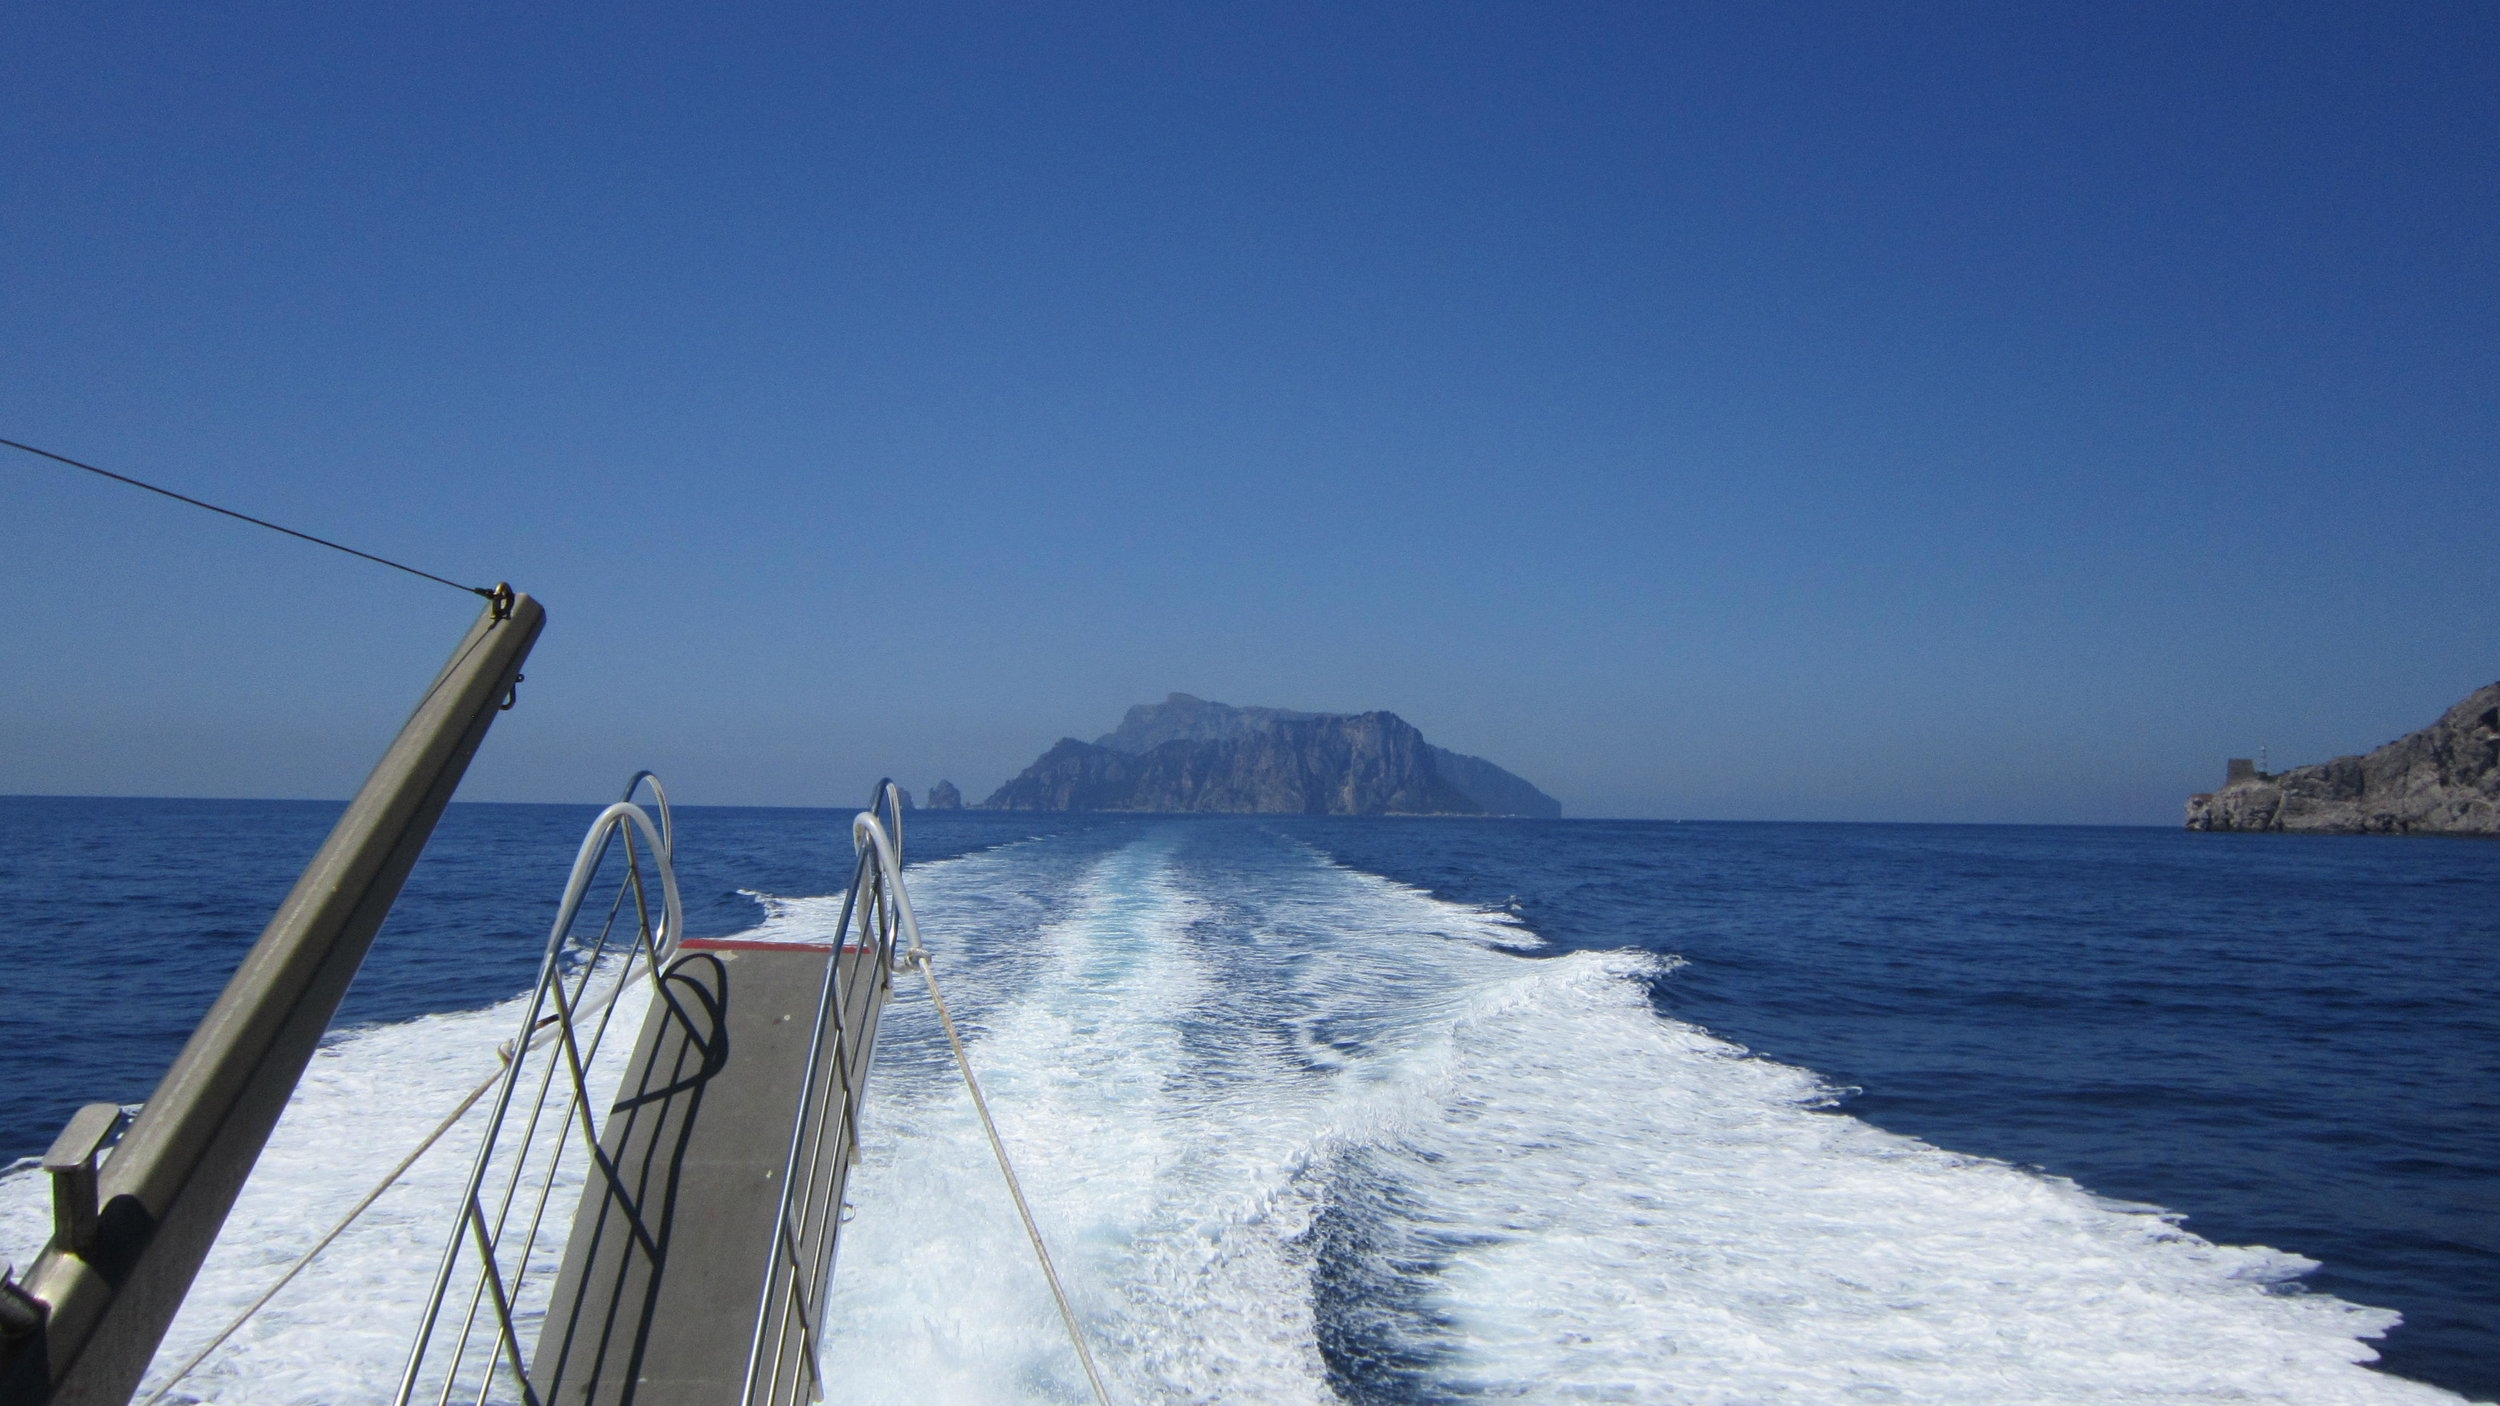 On the boat ride to our hotel in Capri